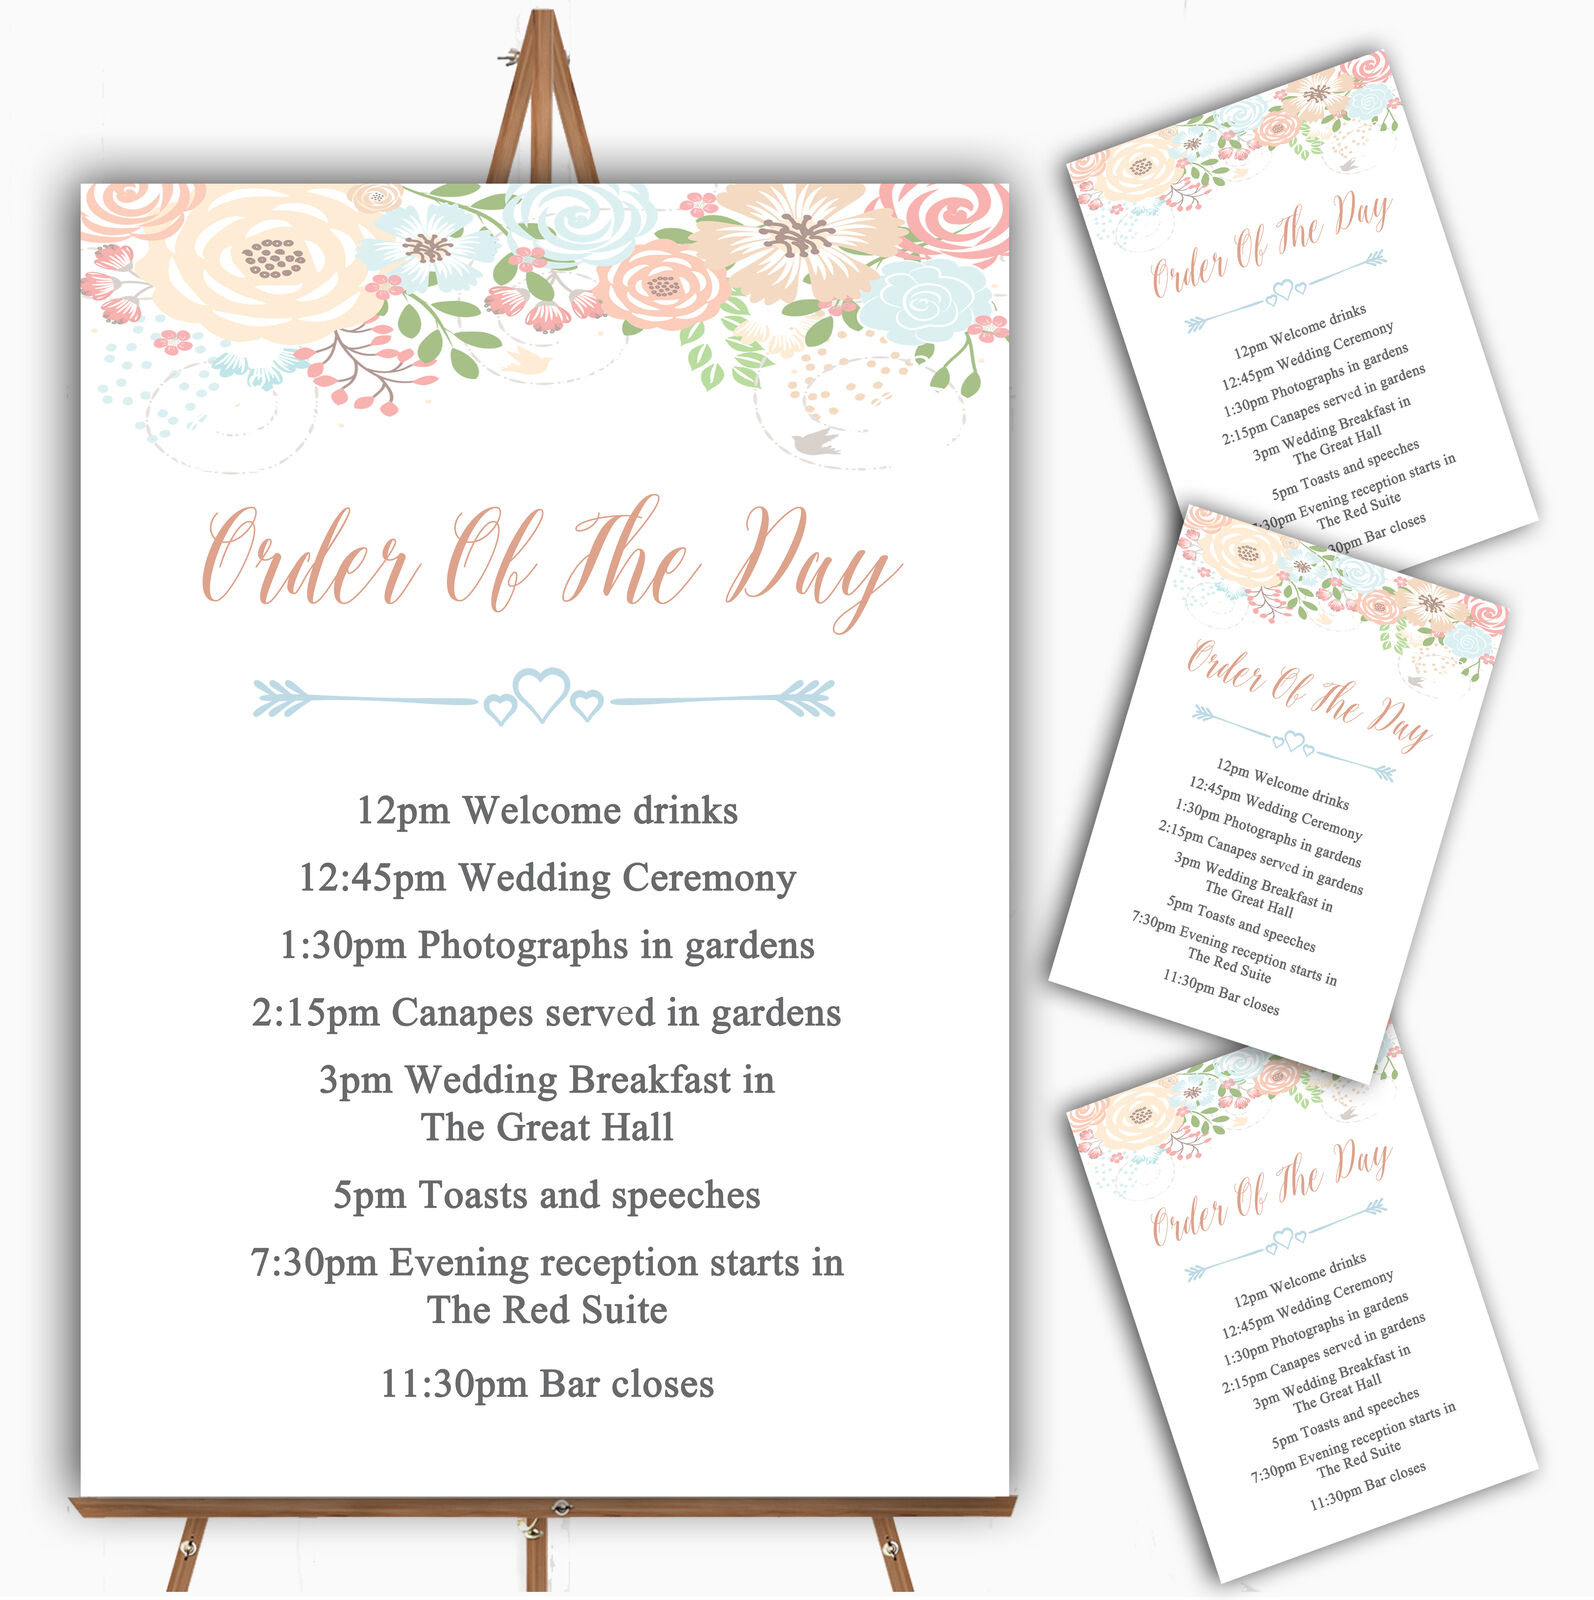 Coral Peach & Blau Watercolour Floral Header Wedding Order Of The Day Cards